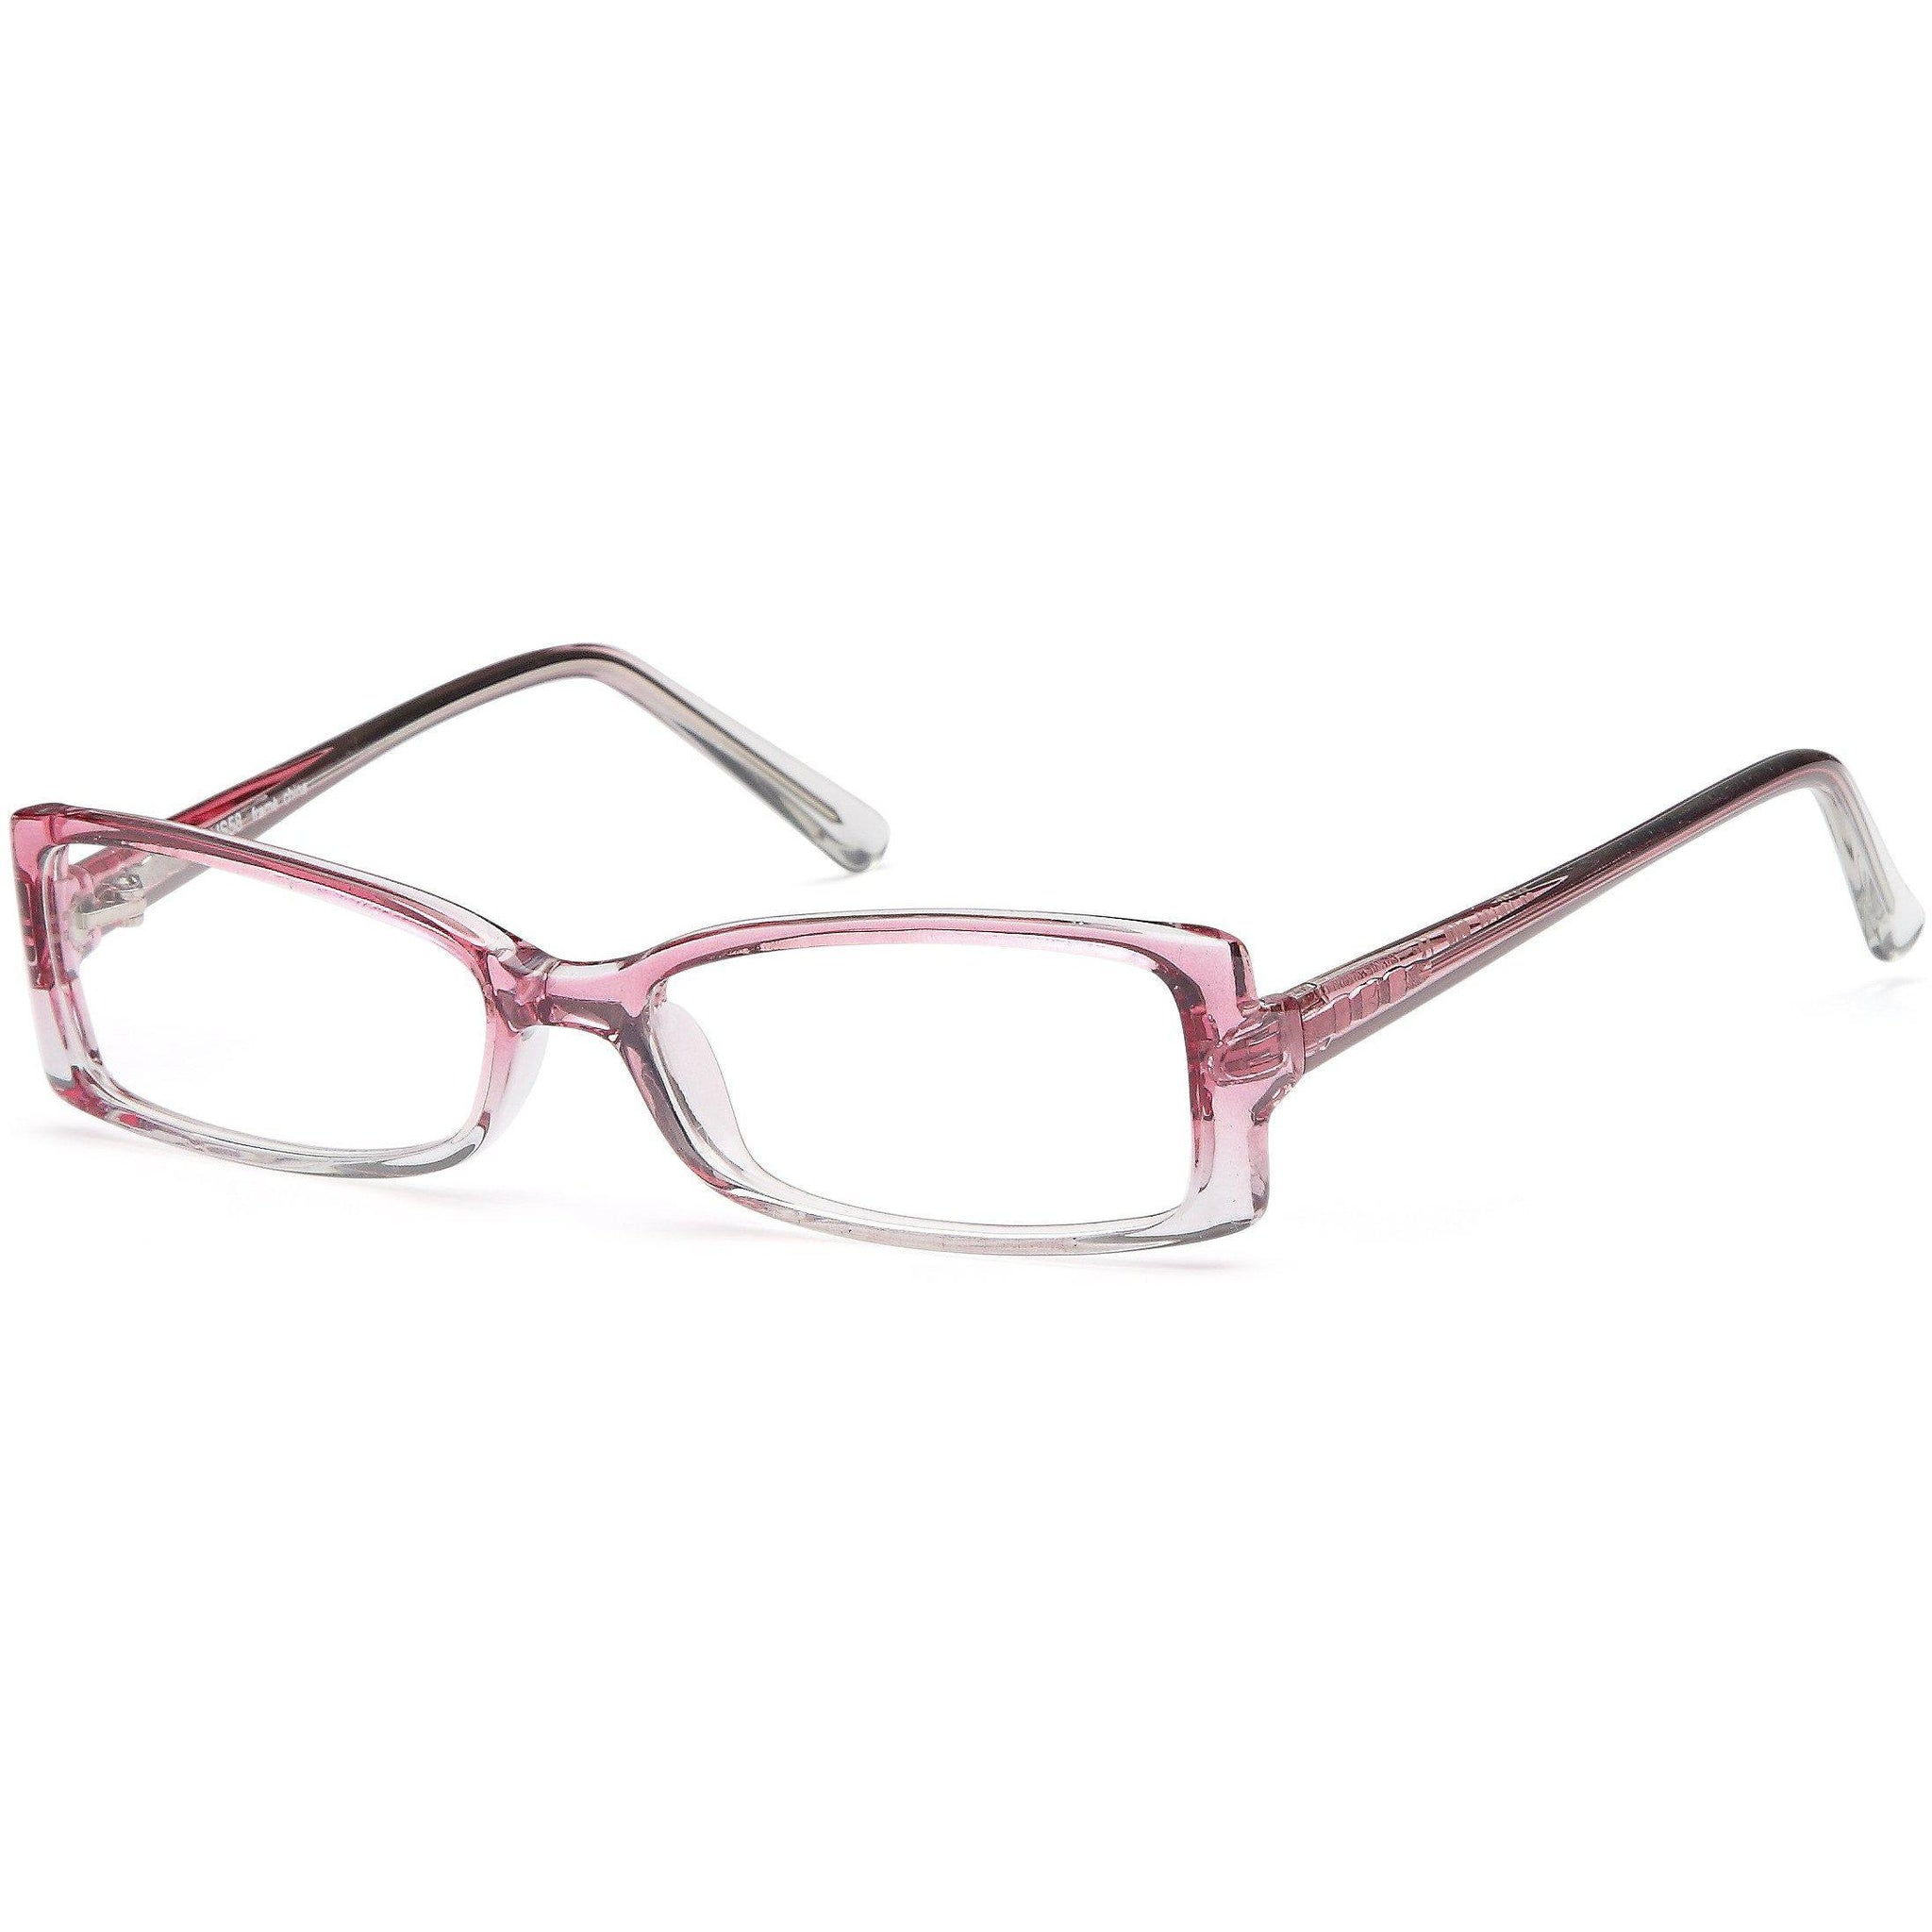 4U Prescription Glasses US 58 Optical Eyeglasses Frame - timetoshade